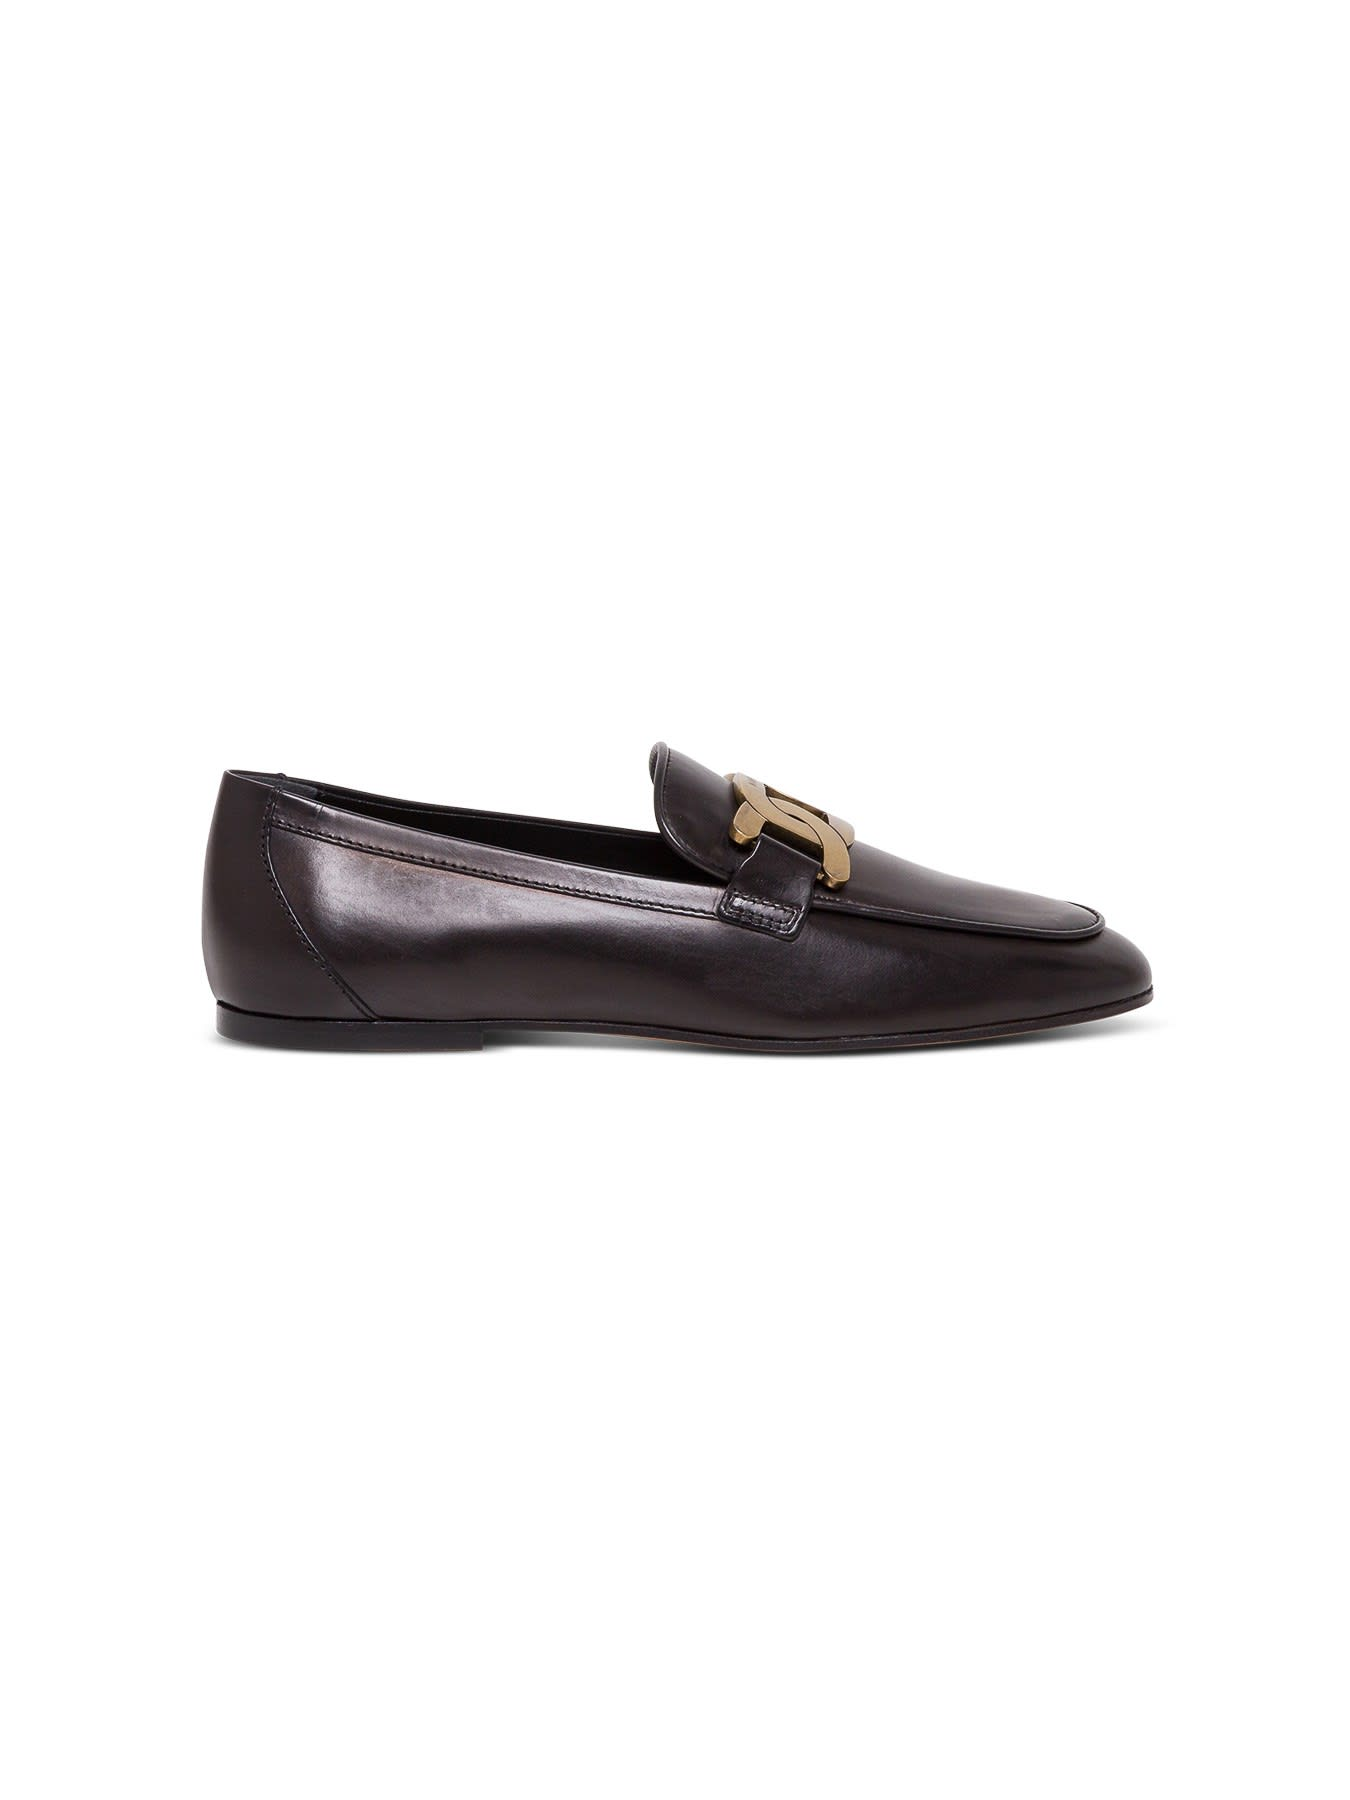 Tods Metal Plaque Loafers